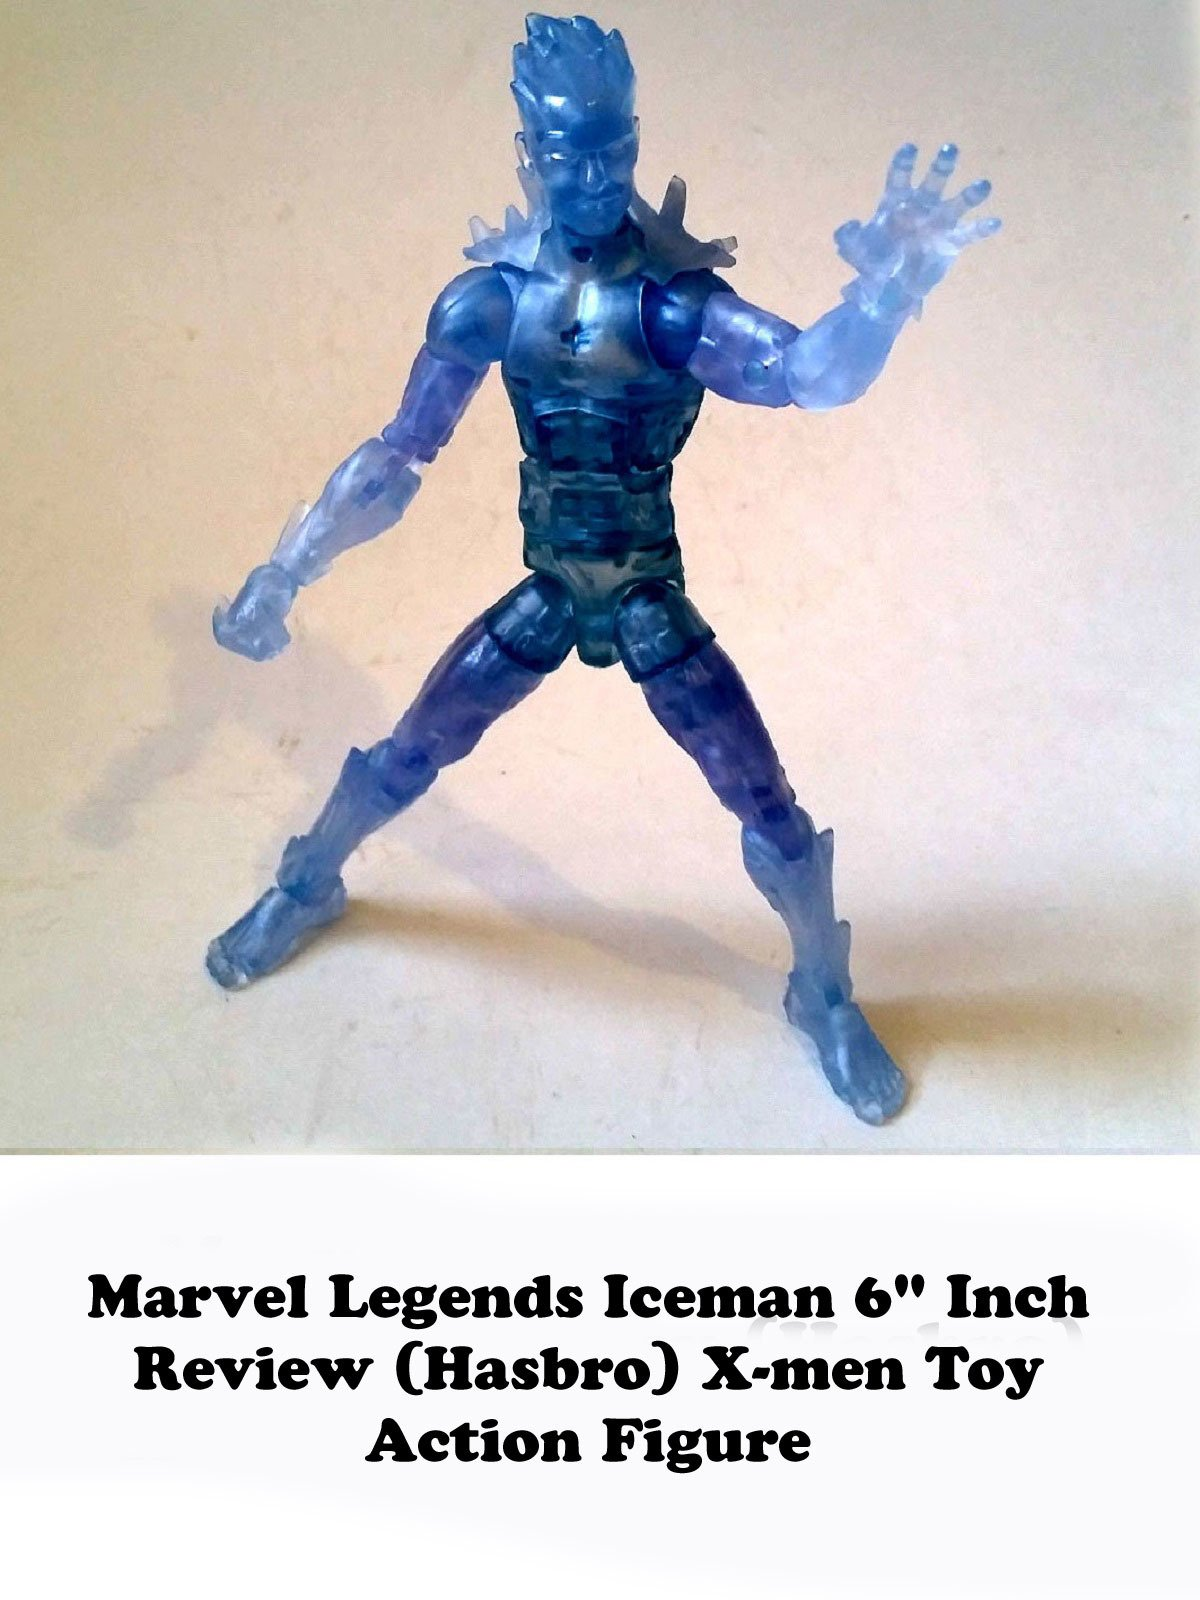 "Review: Marvel Legends Iceman 6"" Inch Review (Hasbro) X-men Toy Action Figure"